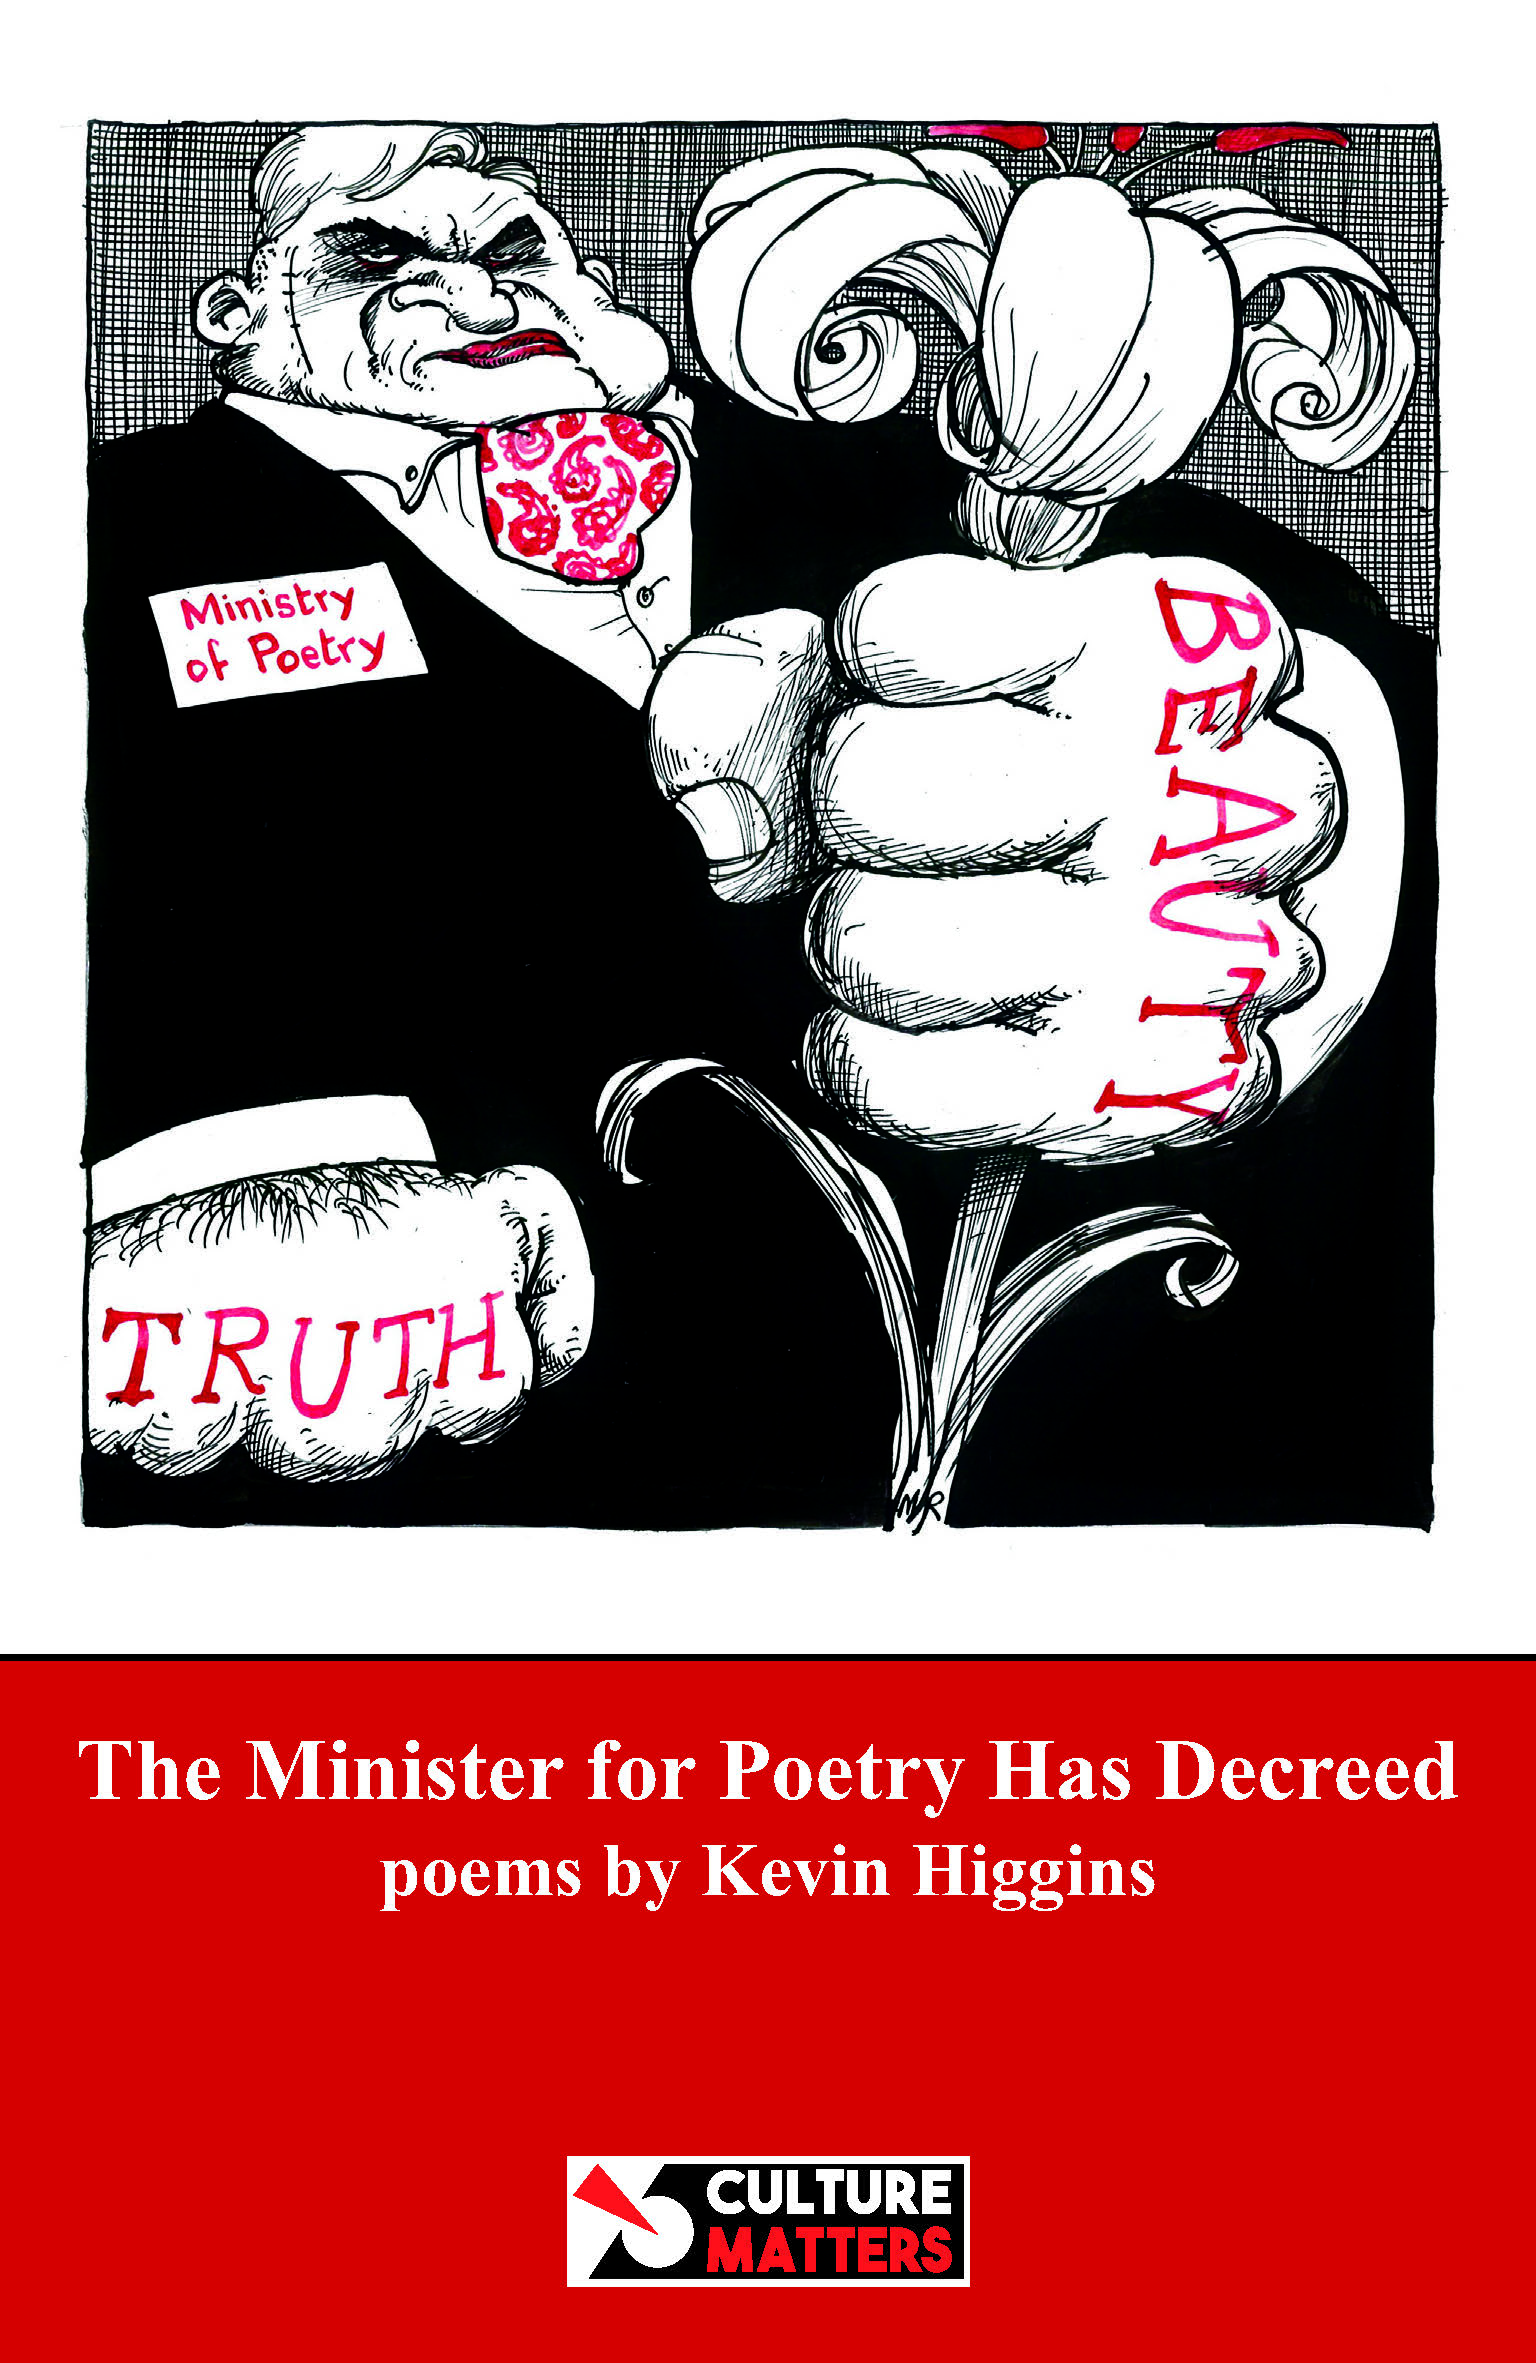 Higgins Poems Cover